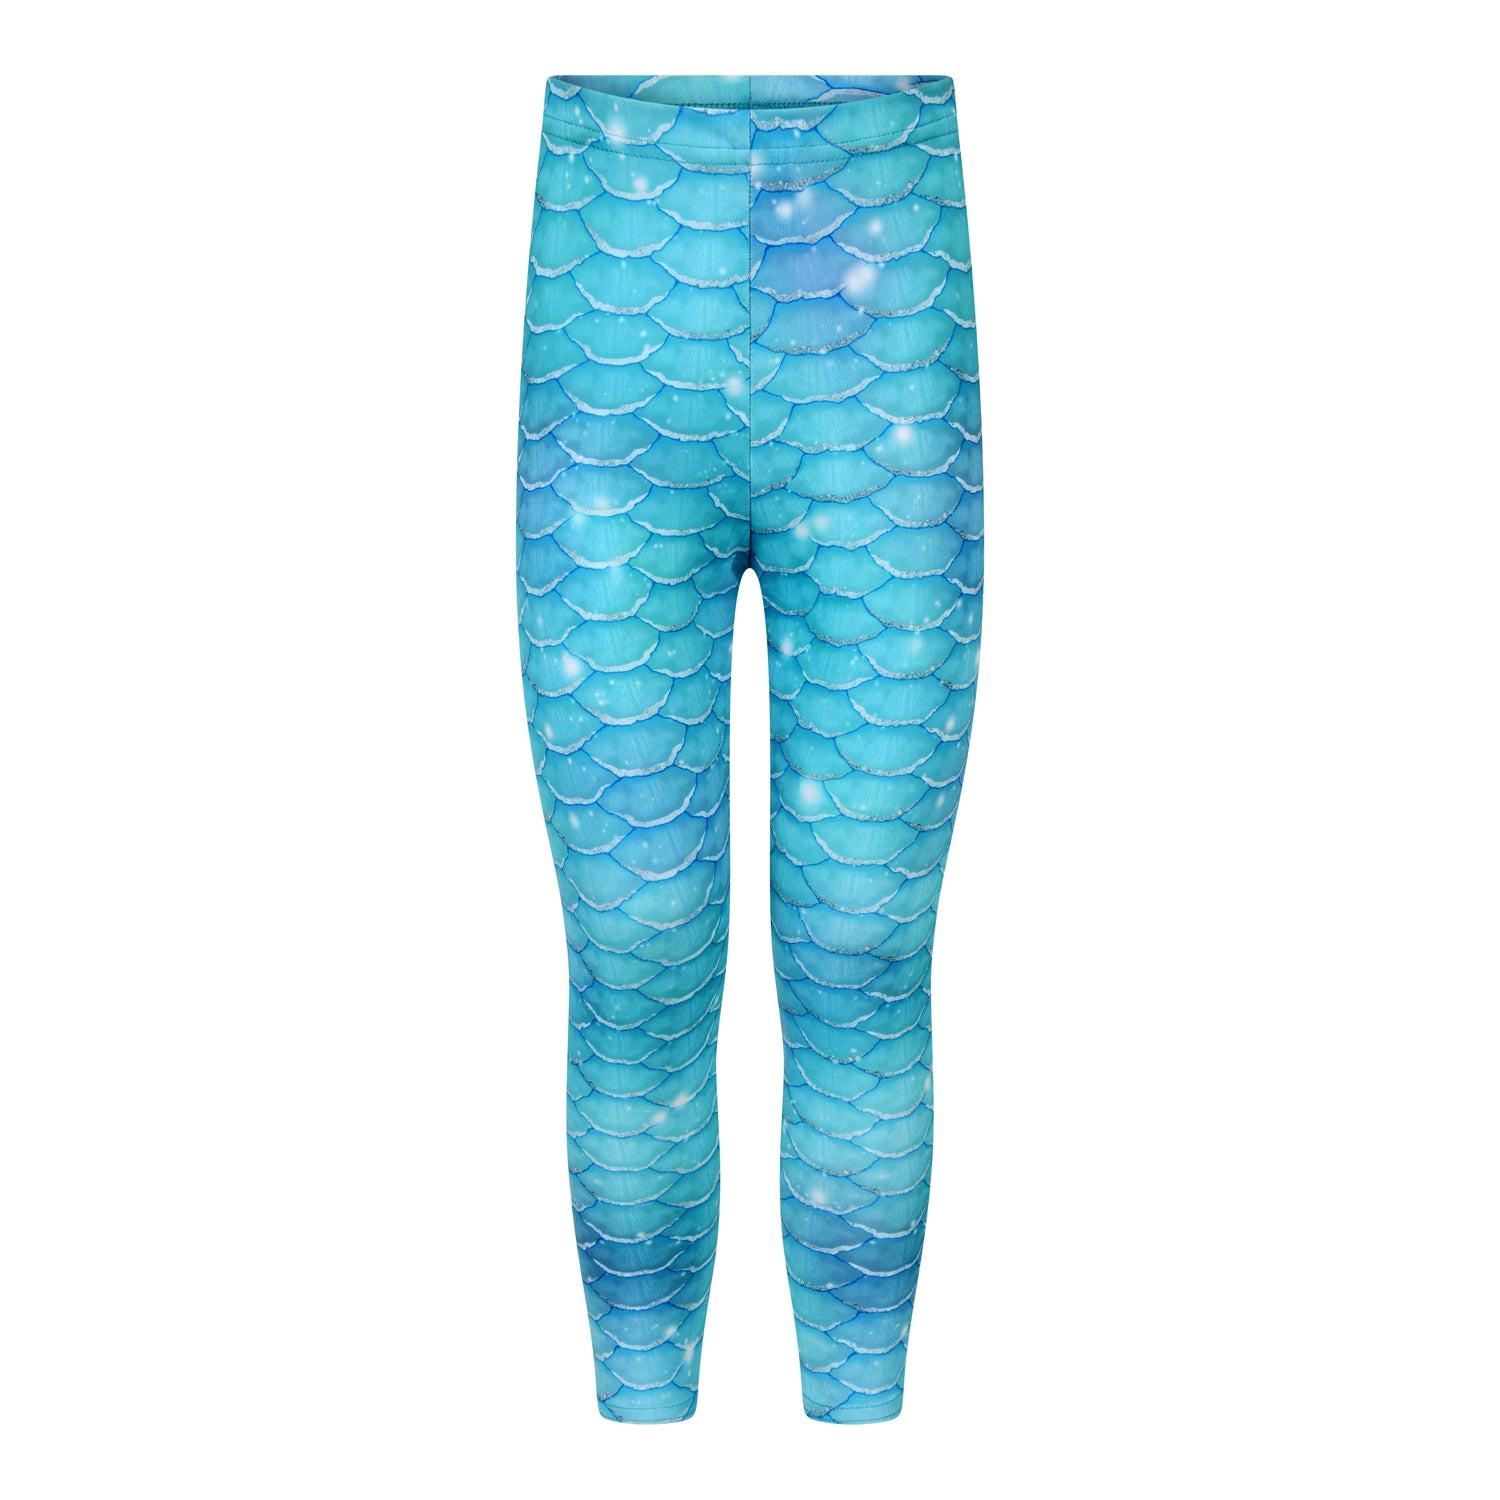 Silver Surfer Mermaid Swim Leggings